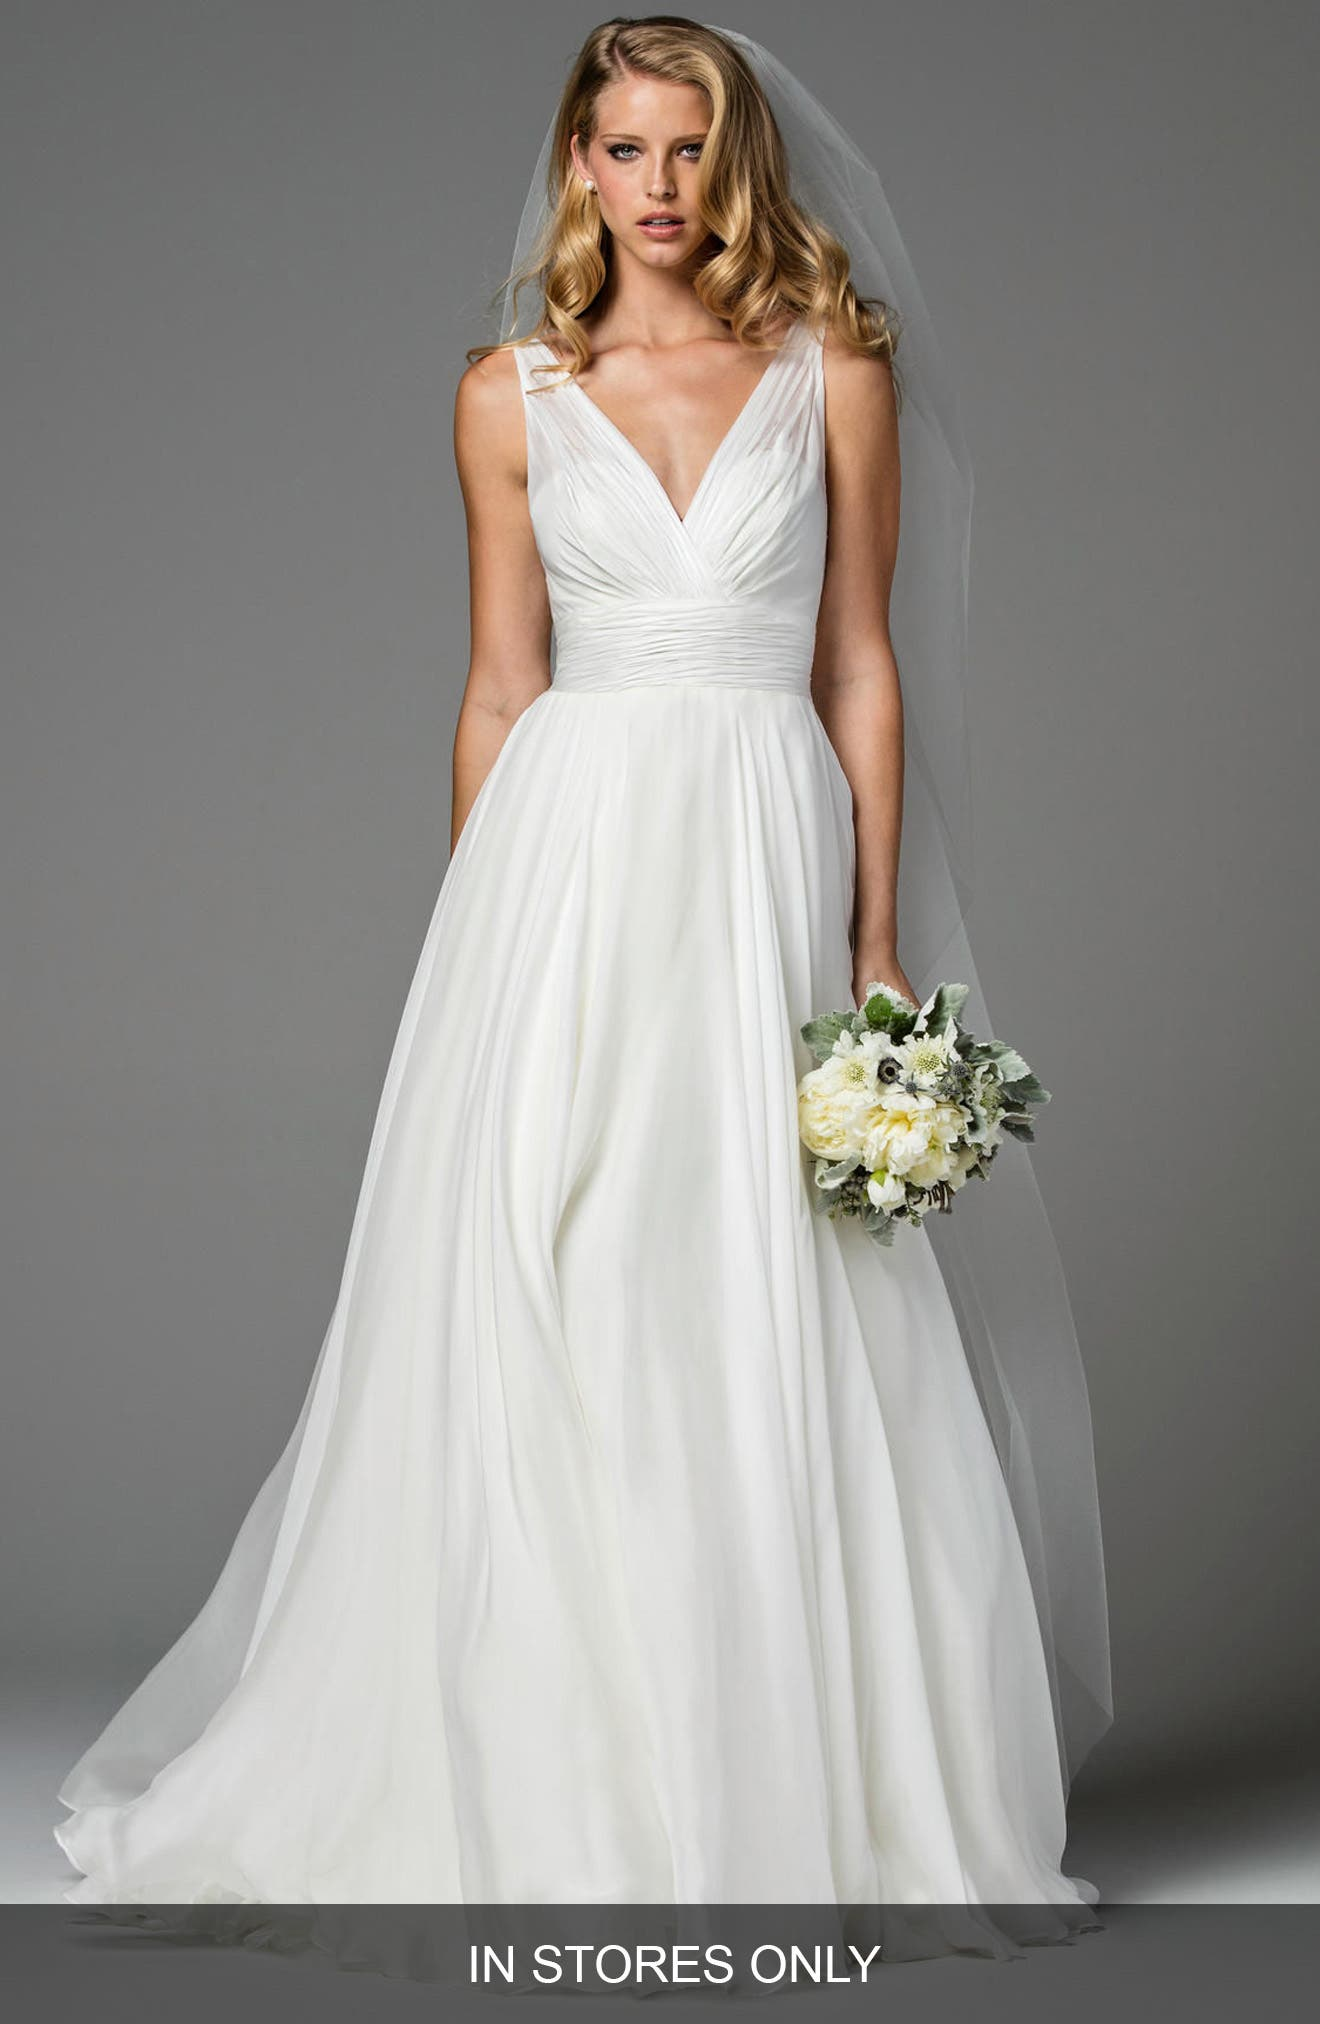 Women's Silk Wedding Dresses & Bridal Gowns | Nordstrom